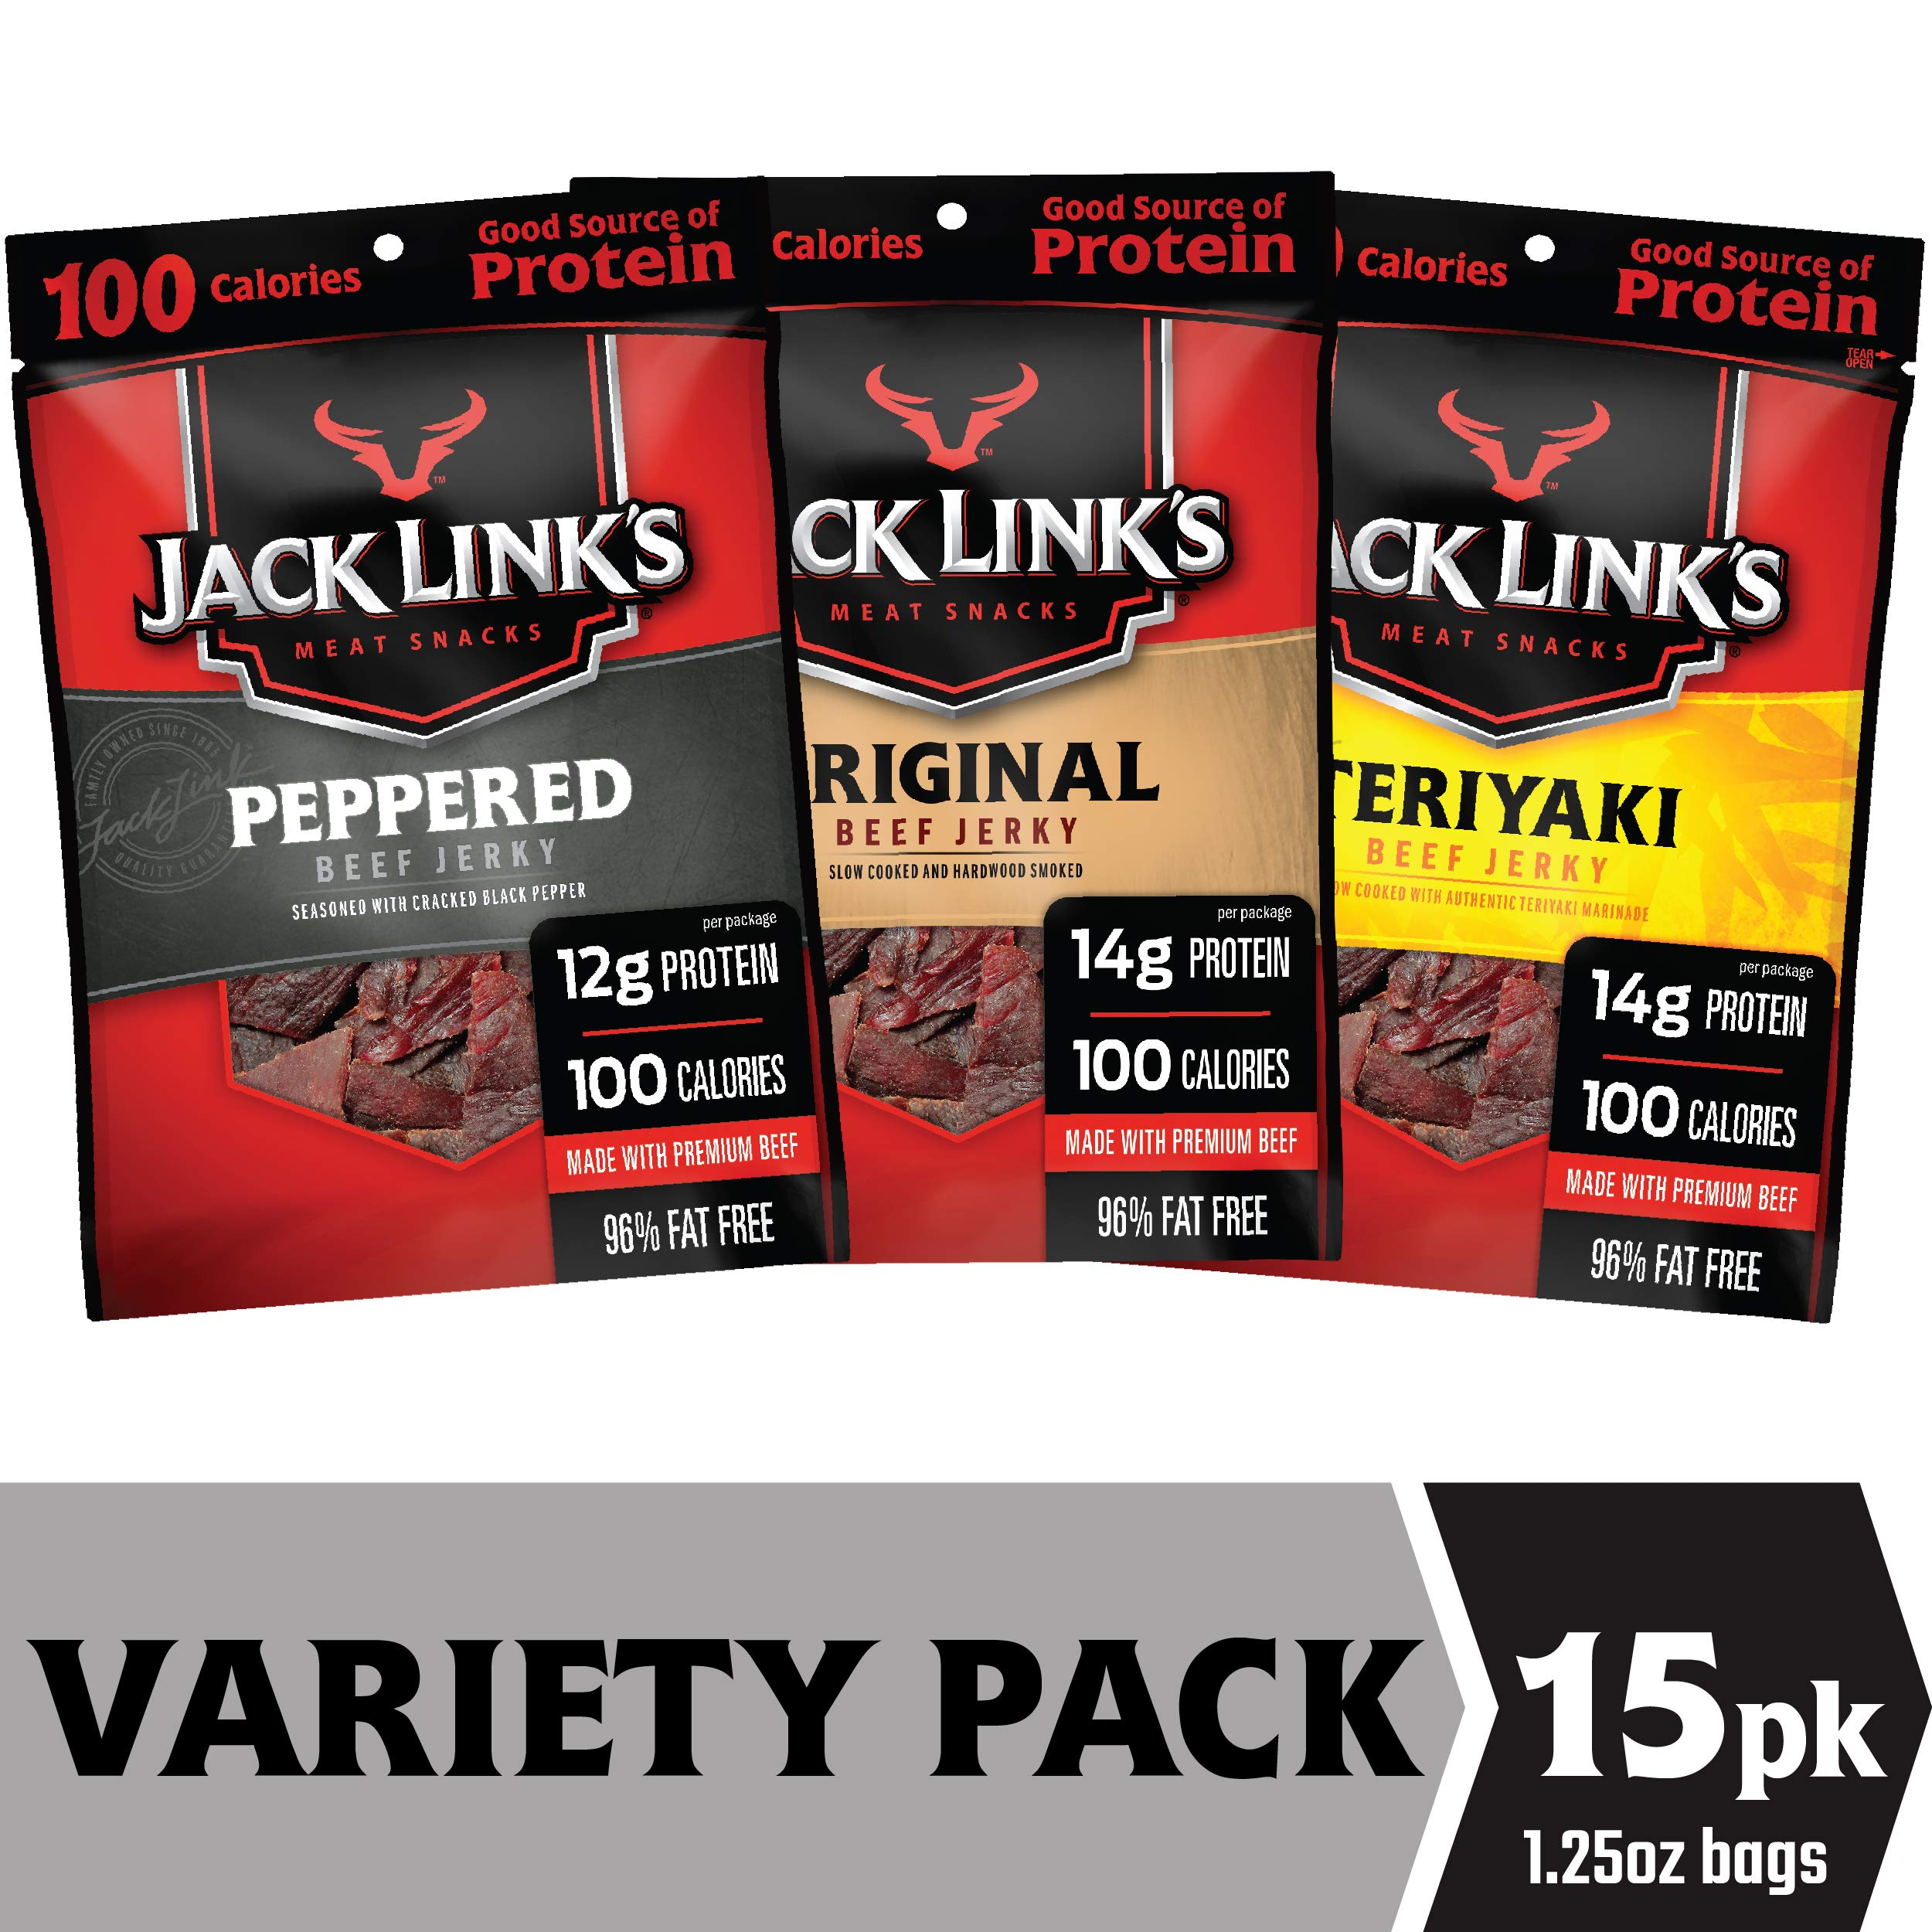 Jack Link's Beef Jerky Variety Pack, 15 (1.25 oz Bags) - Variety Pack Includes Original, Teriyaki and Peppered Beef Jerky, Great for Lunch Boxes, Good Source of Protein - 96% Fat Free, No Added MSG by Jack Links